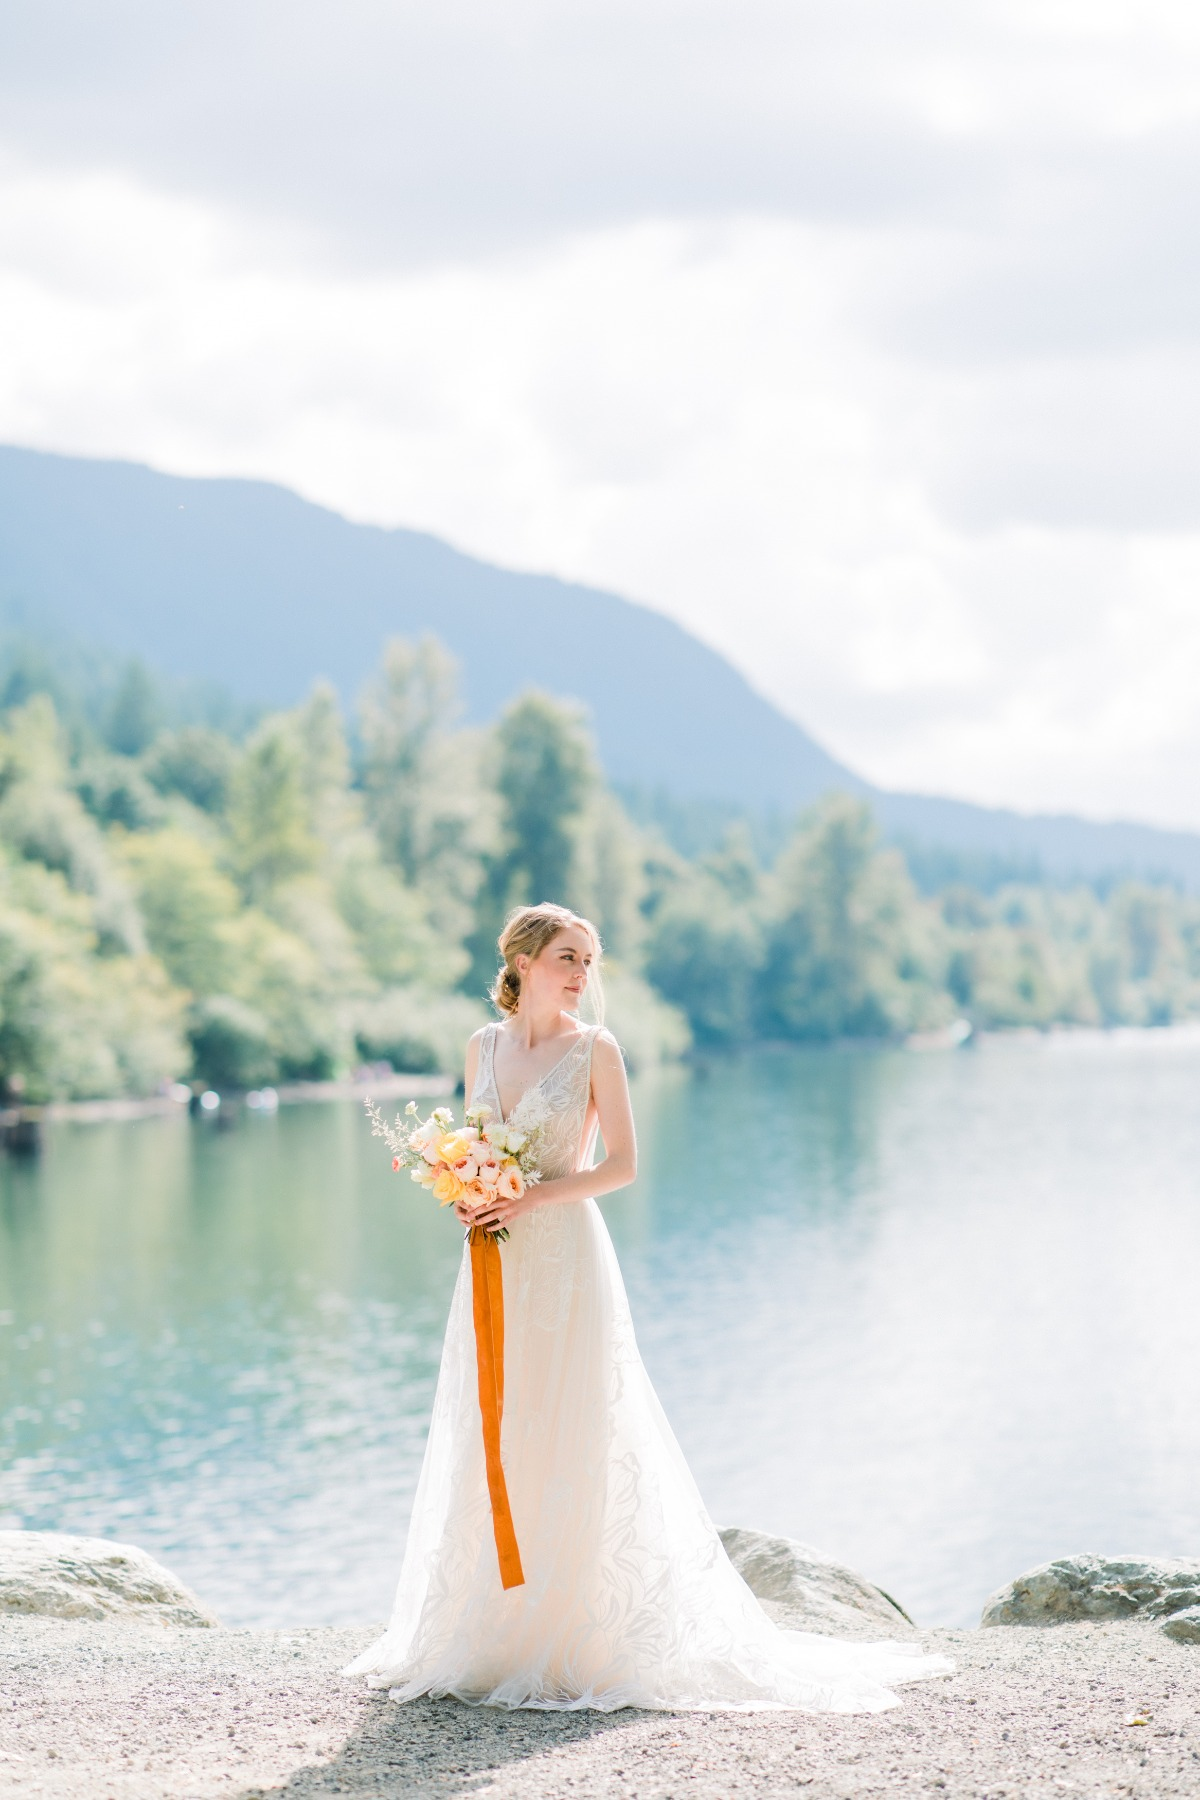 A Bridal Shoot Inspired by the Seattle Sunset in Late Summer